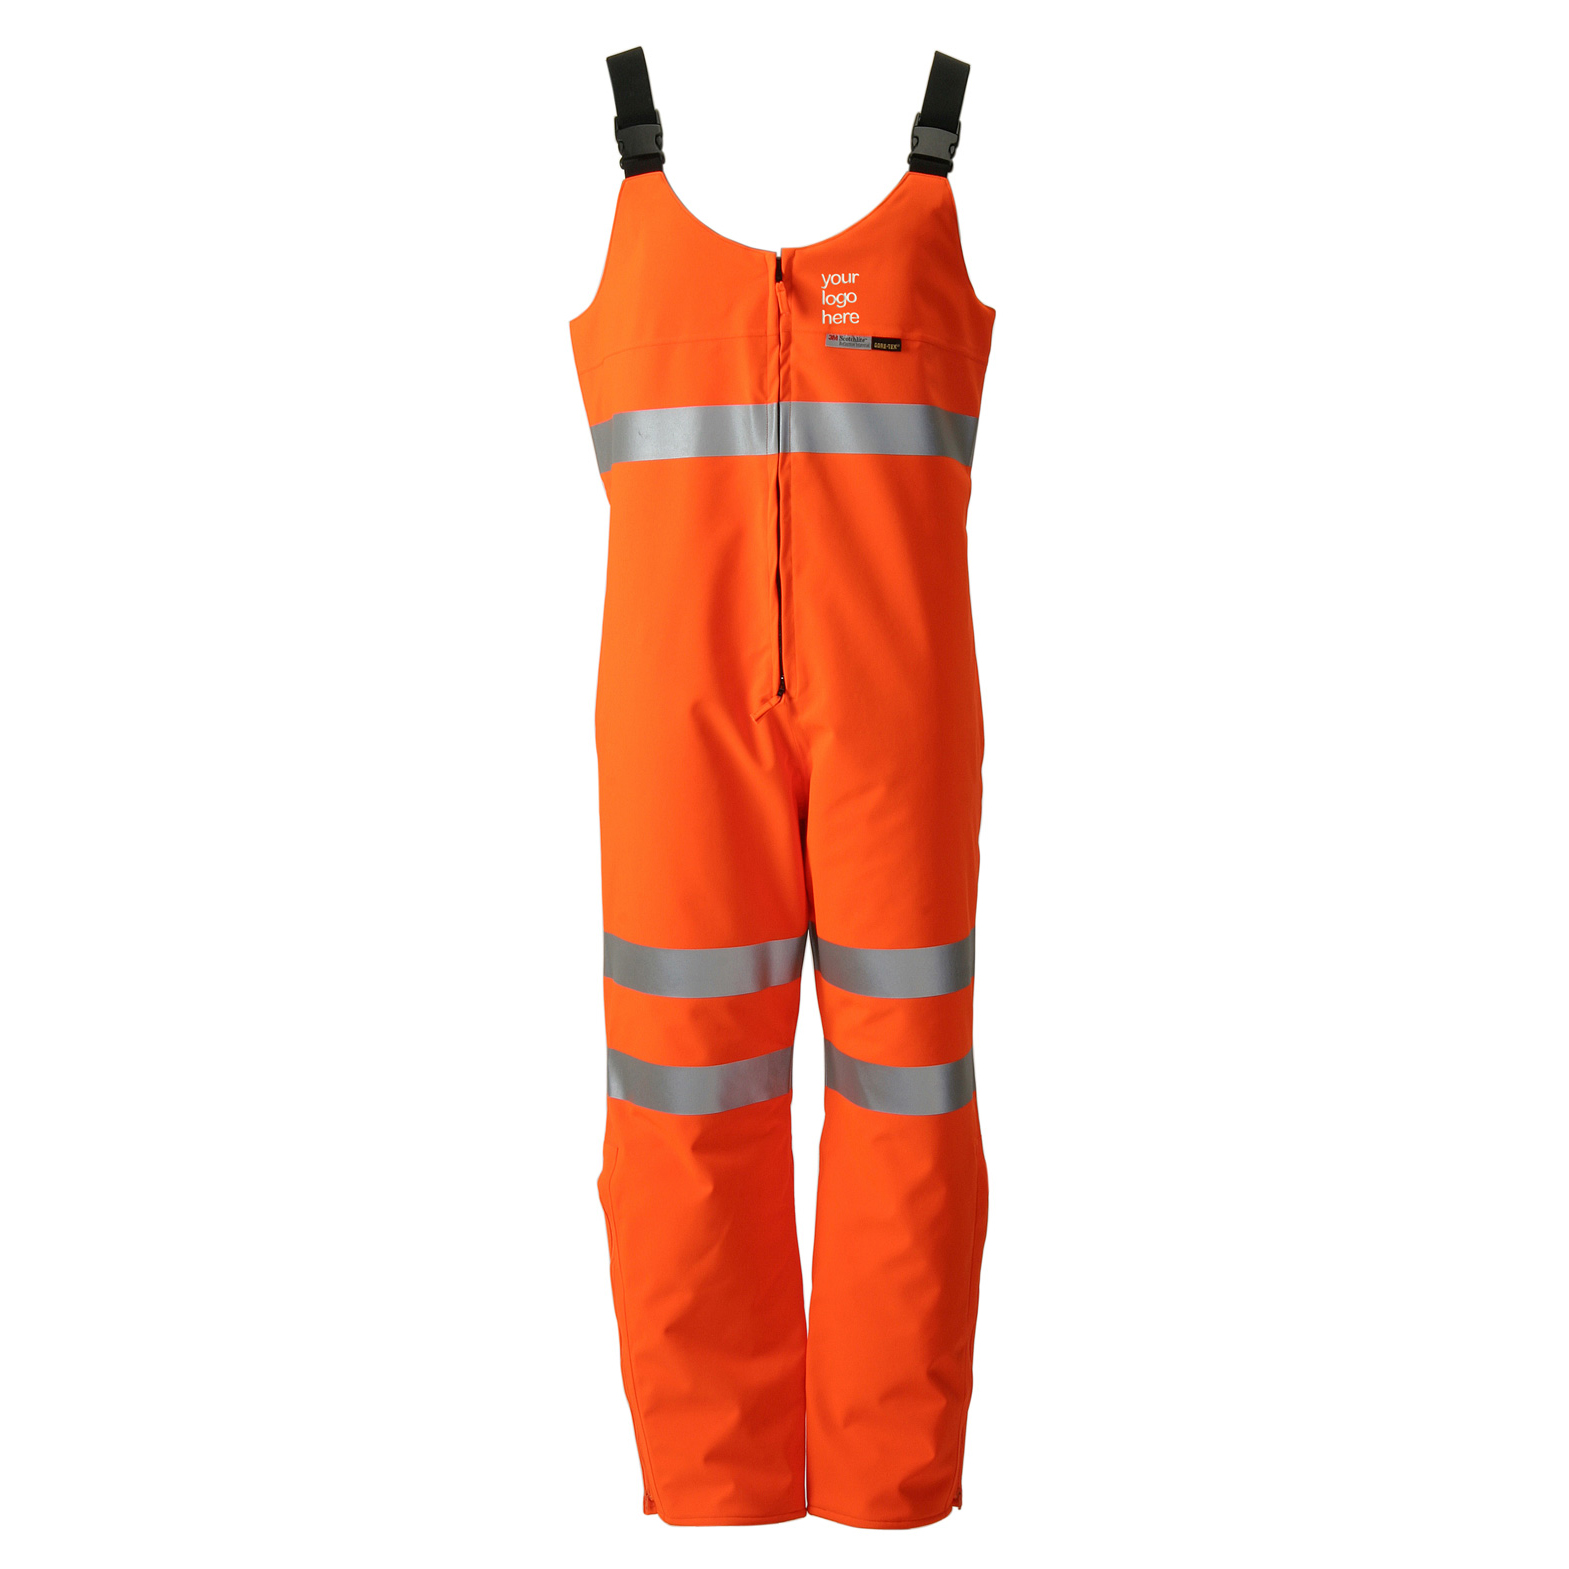 Bib & Brace / Salopettes B-Seen Gore-Tex Foul Weather Salopette Orange S Ref GTHV14ORS *Up to 3 Day Leadtime*